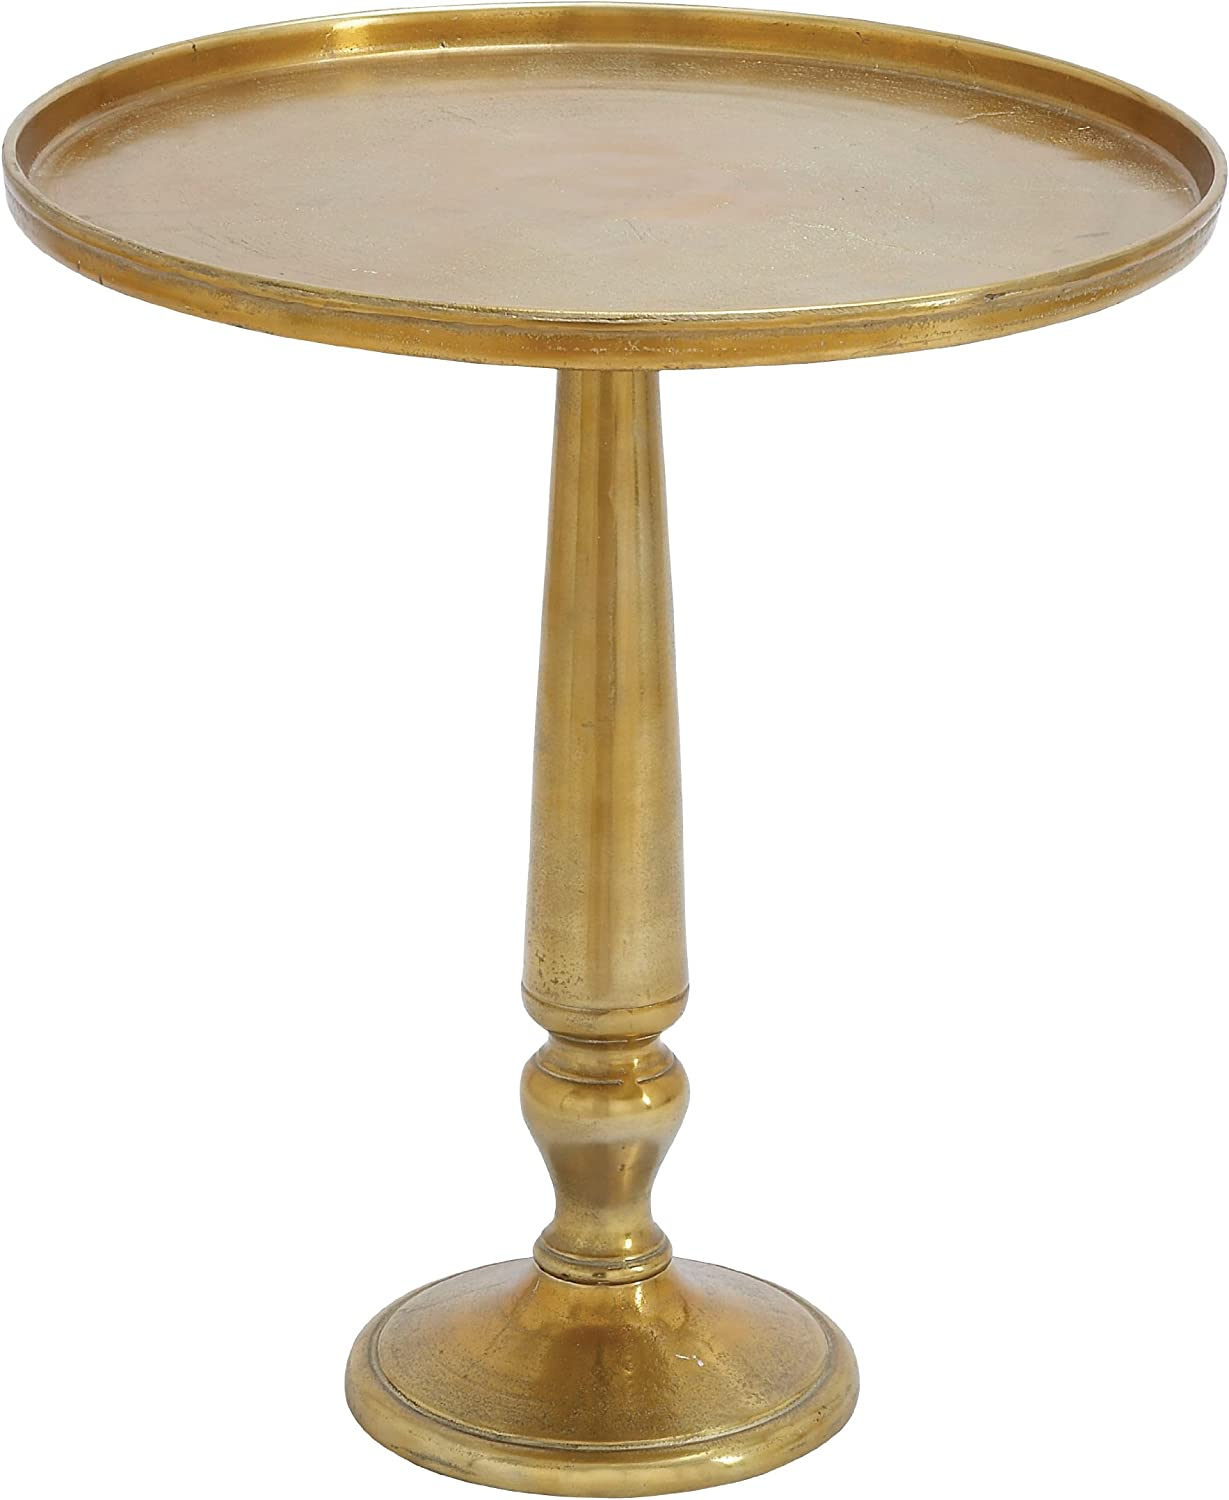 Plutus Brands Elegantly Designed Table 2021 new Fini Large special price Distressed Tray with